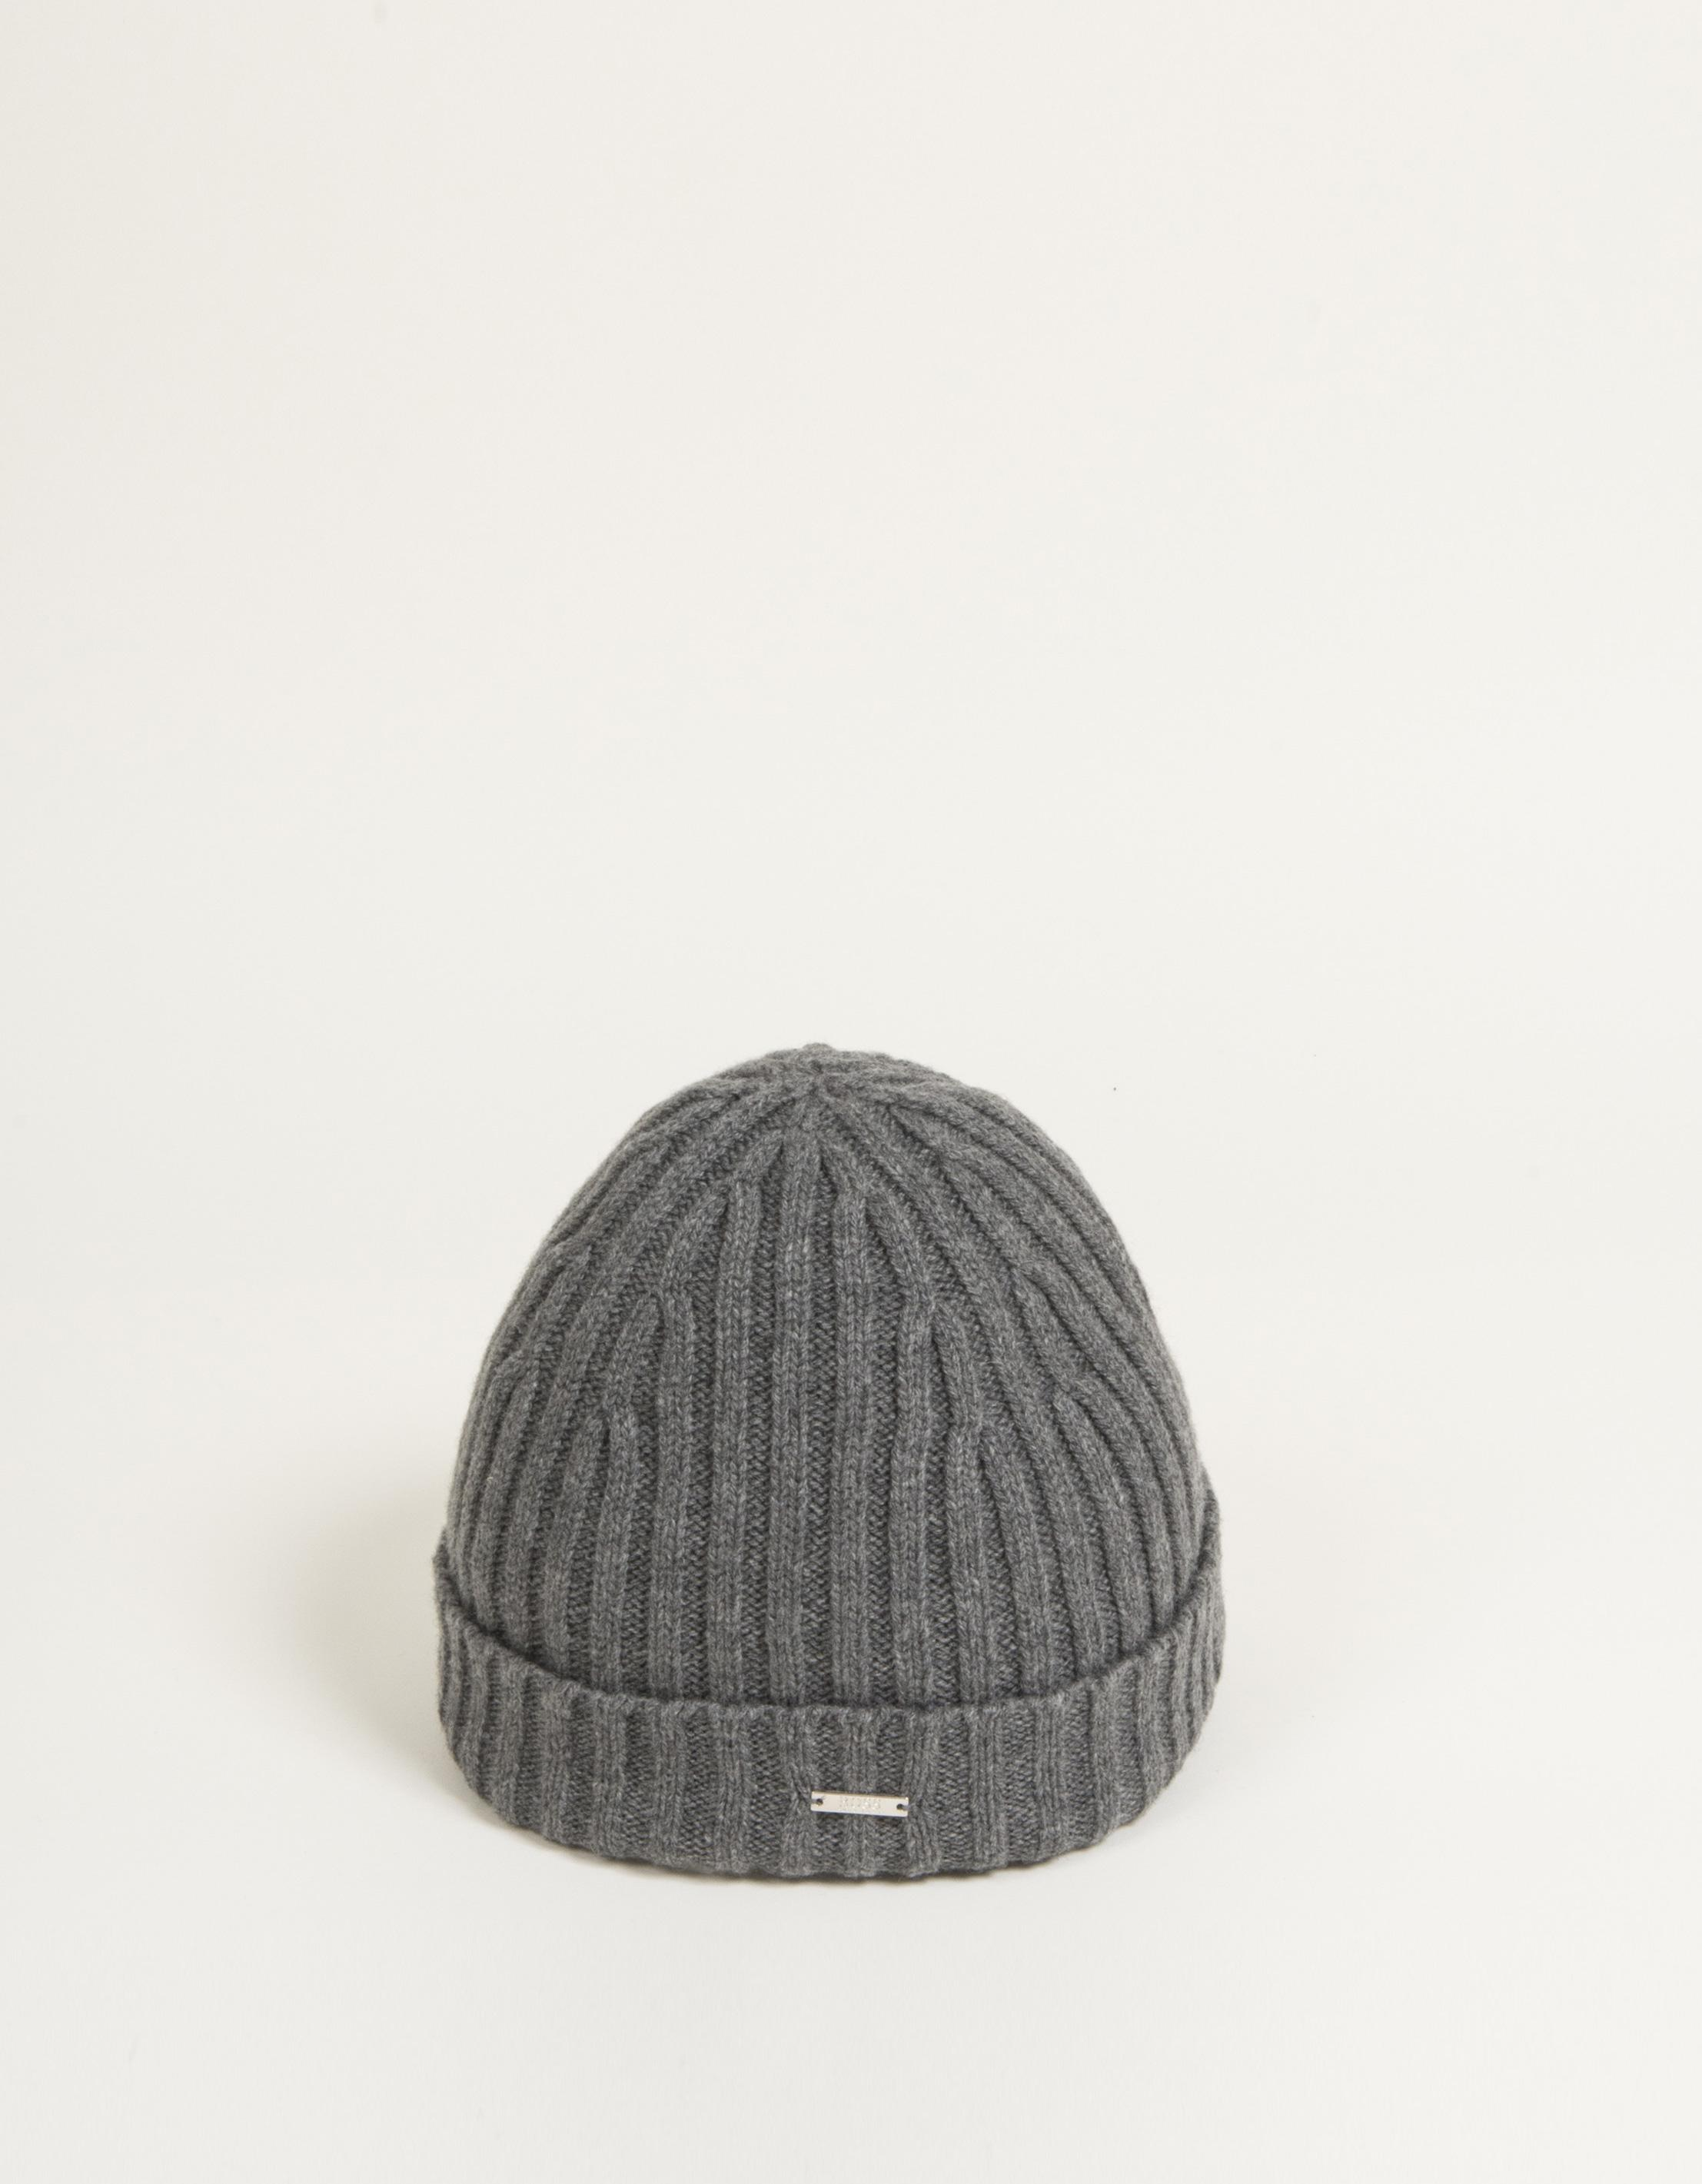 bb1d8d30 BOSS 't-benzo' Cashmere Classic Ribbed Beanie Hat Grey in Gray for ...